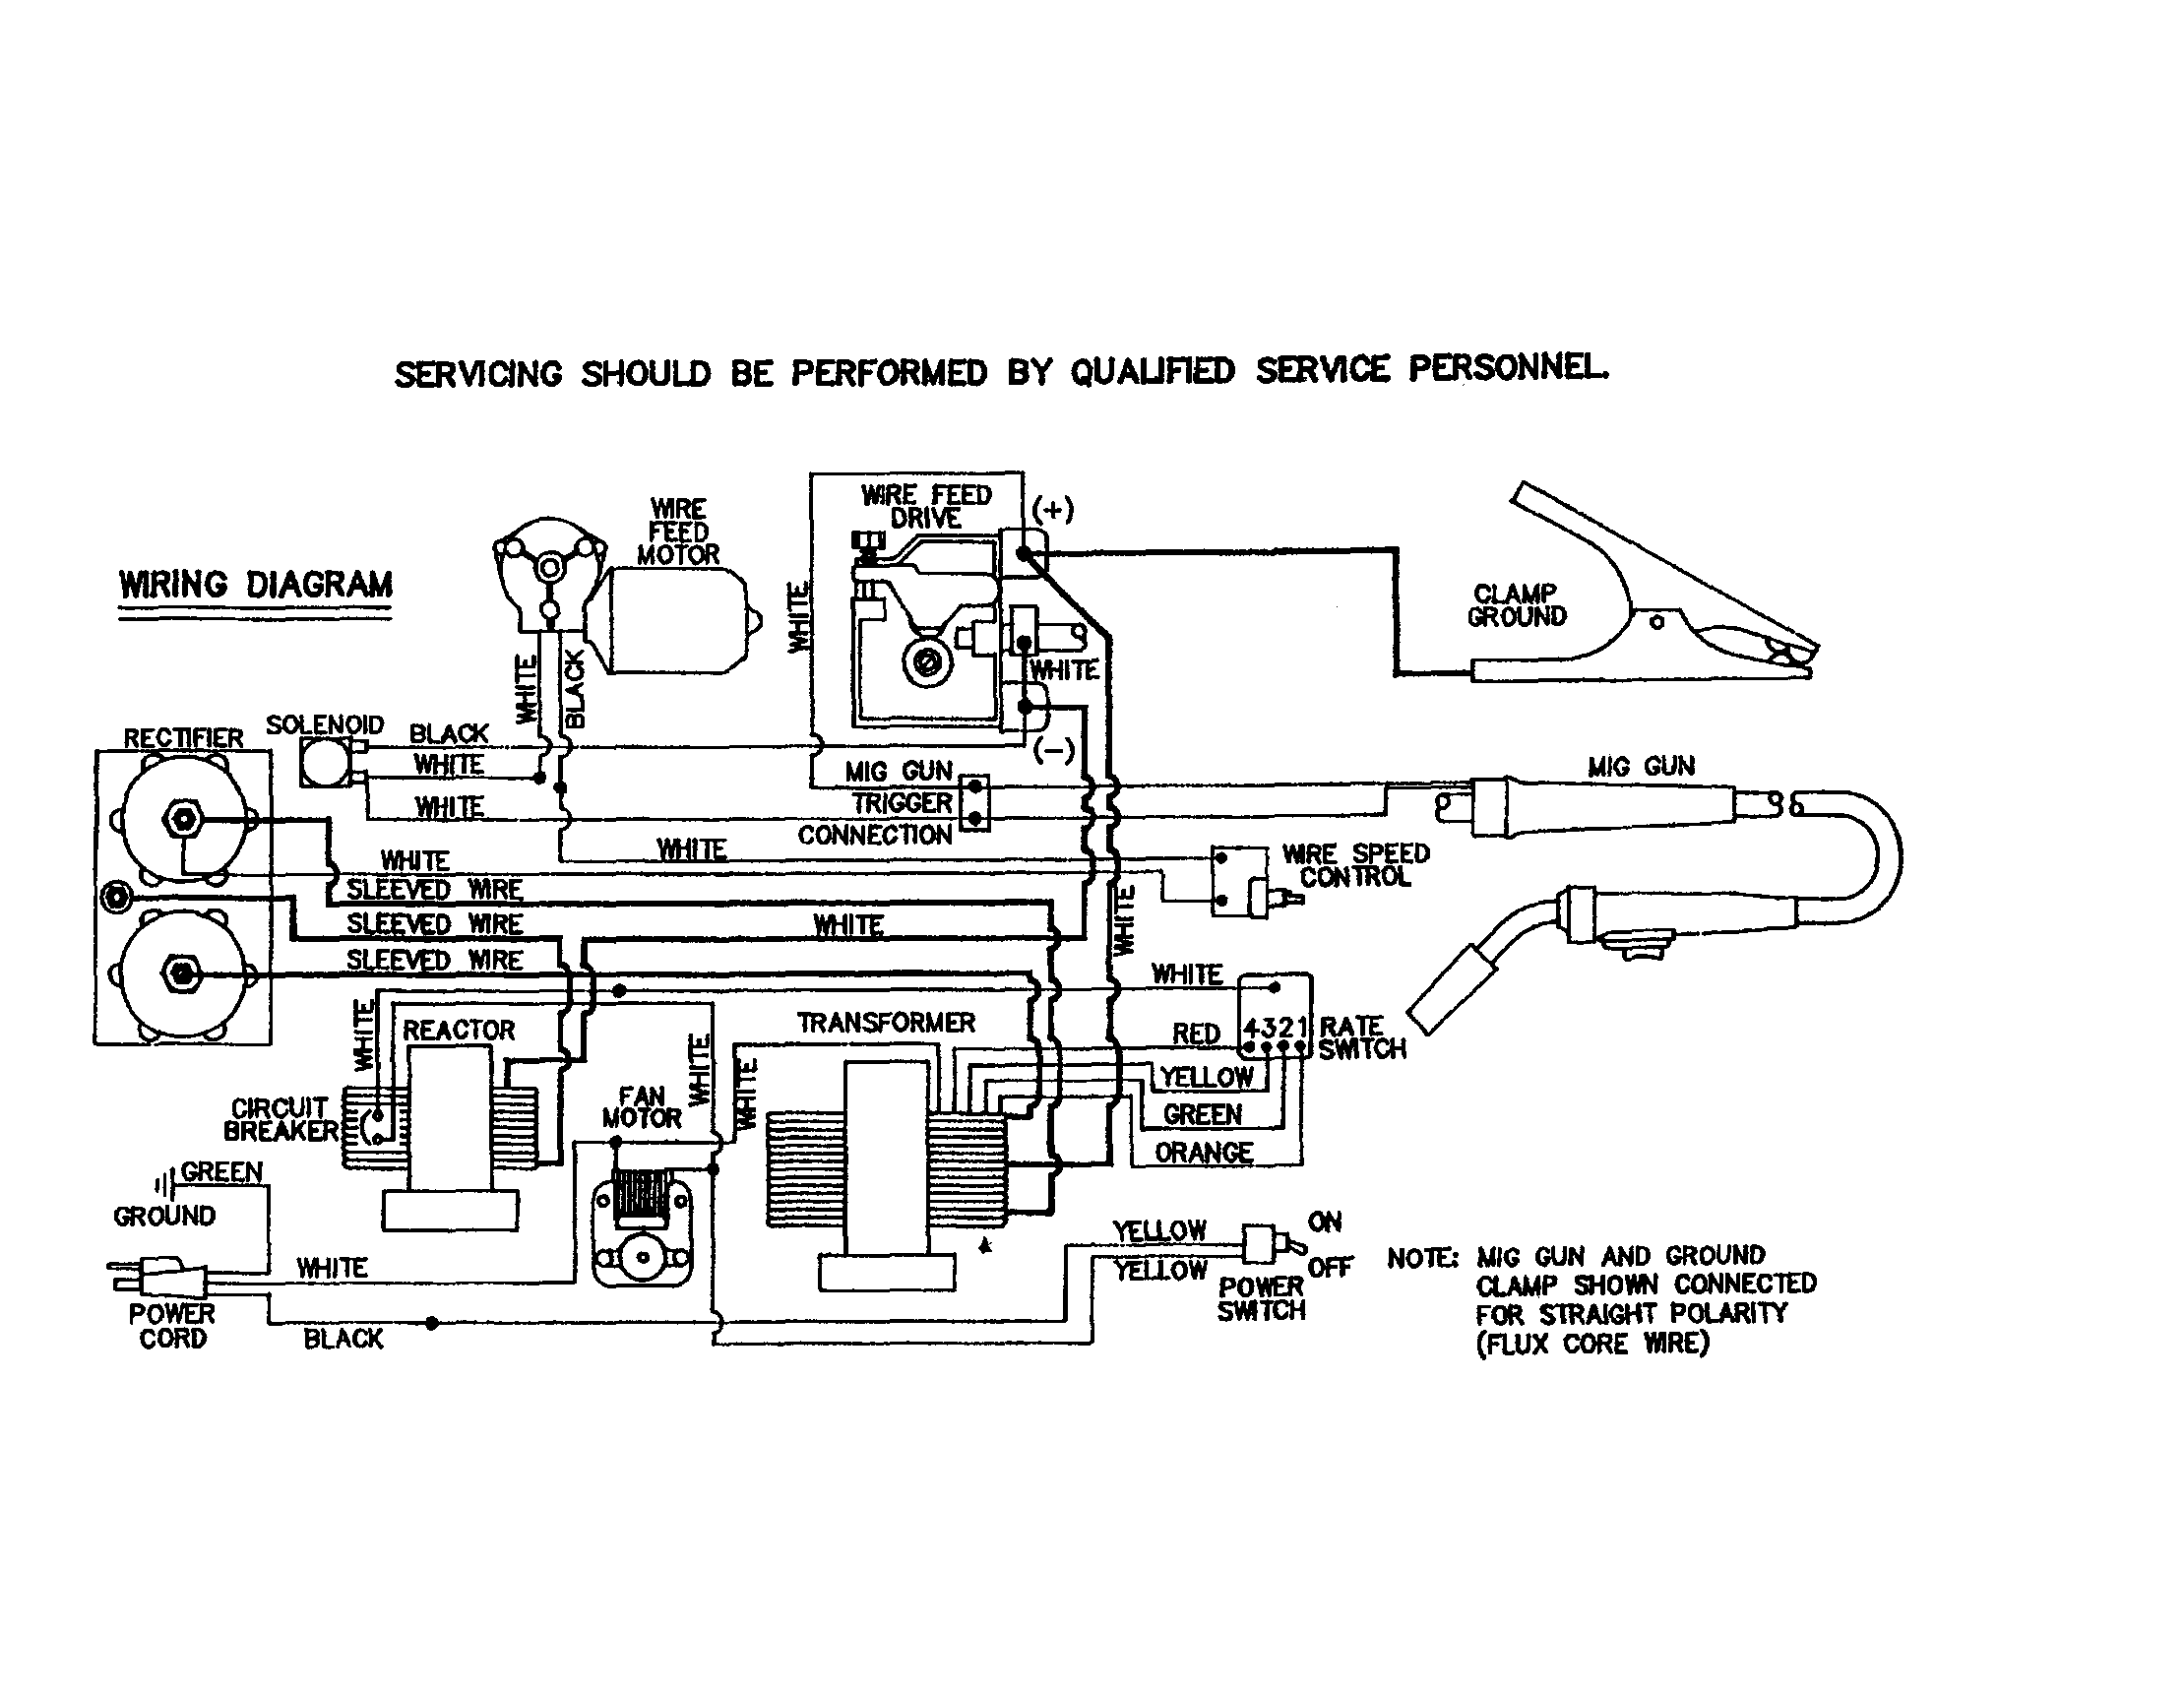 WIRING DIAGRAM Diagram & Parts List for Model 93420111